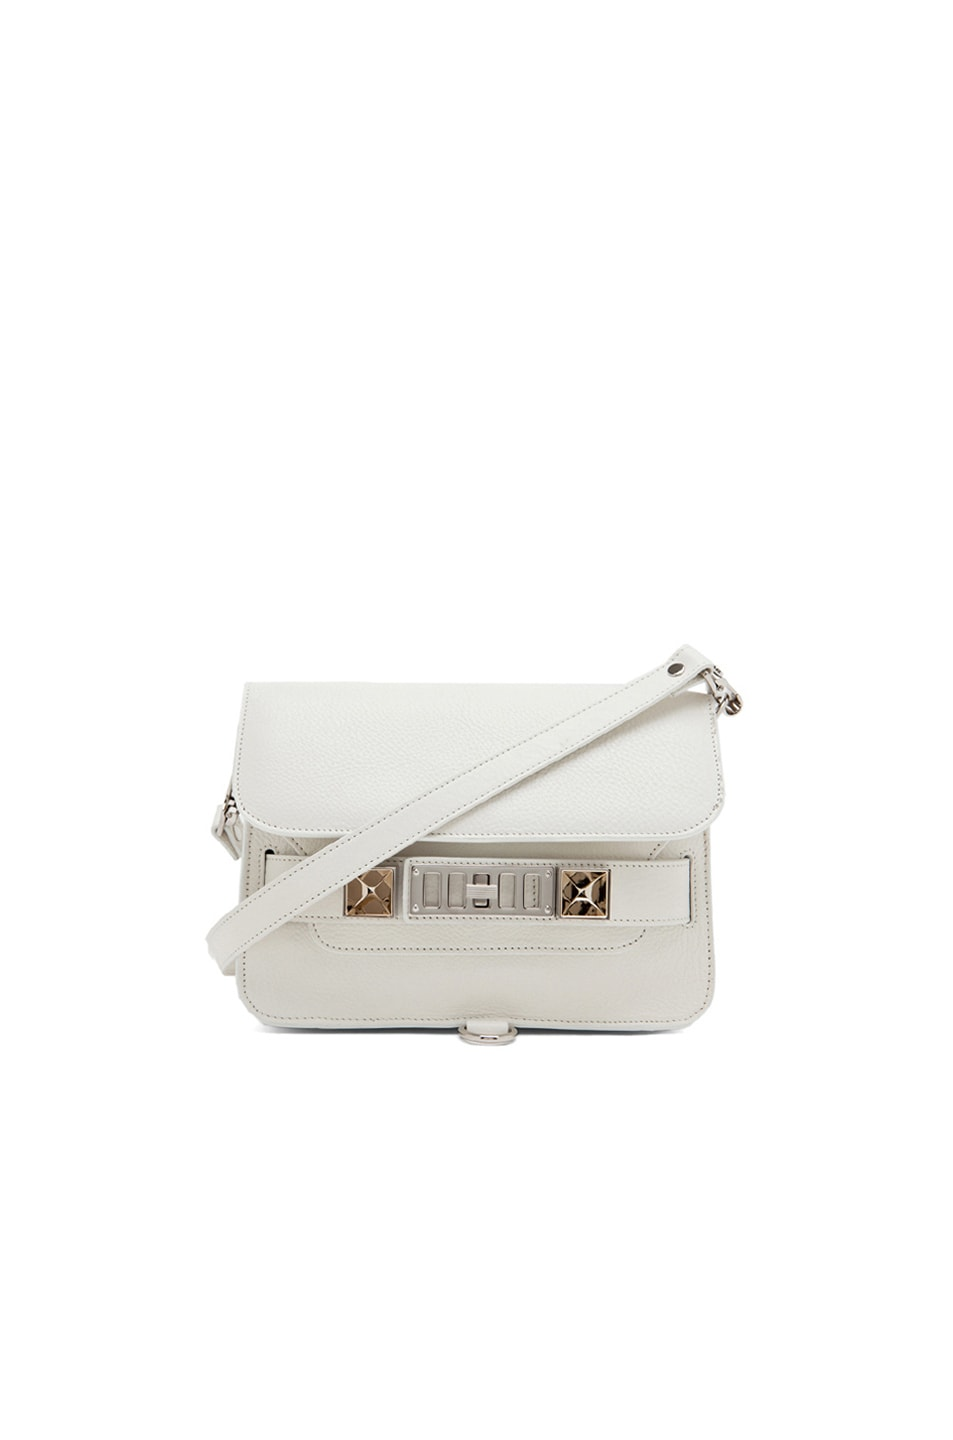 Image 1 of Proenza Schouler Mini PS11 Classic in White